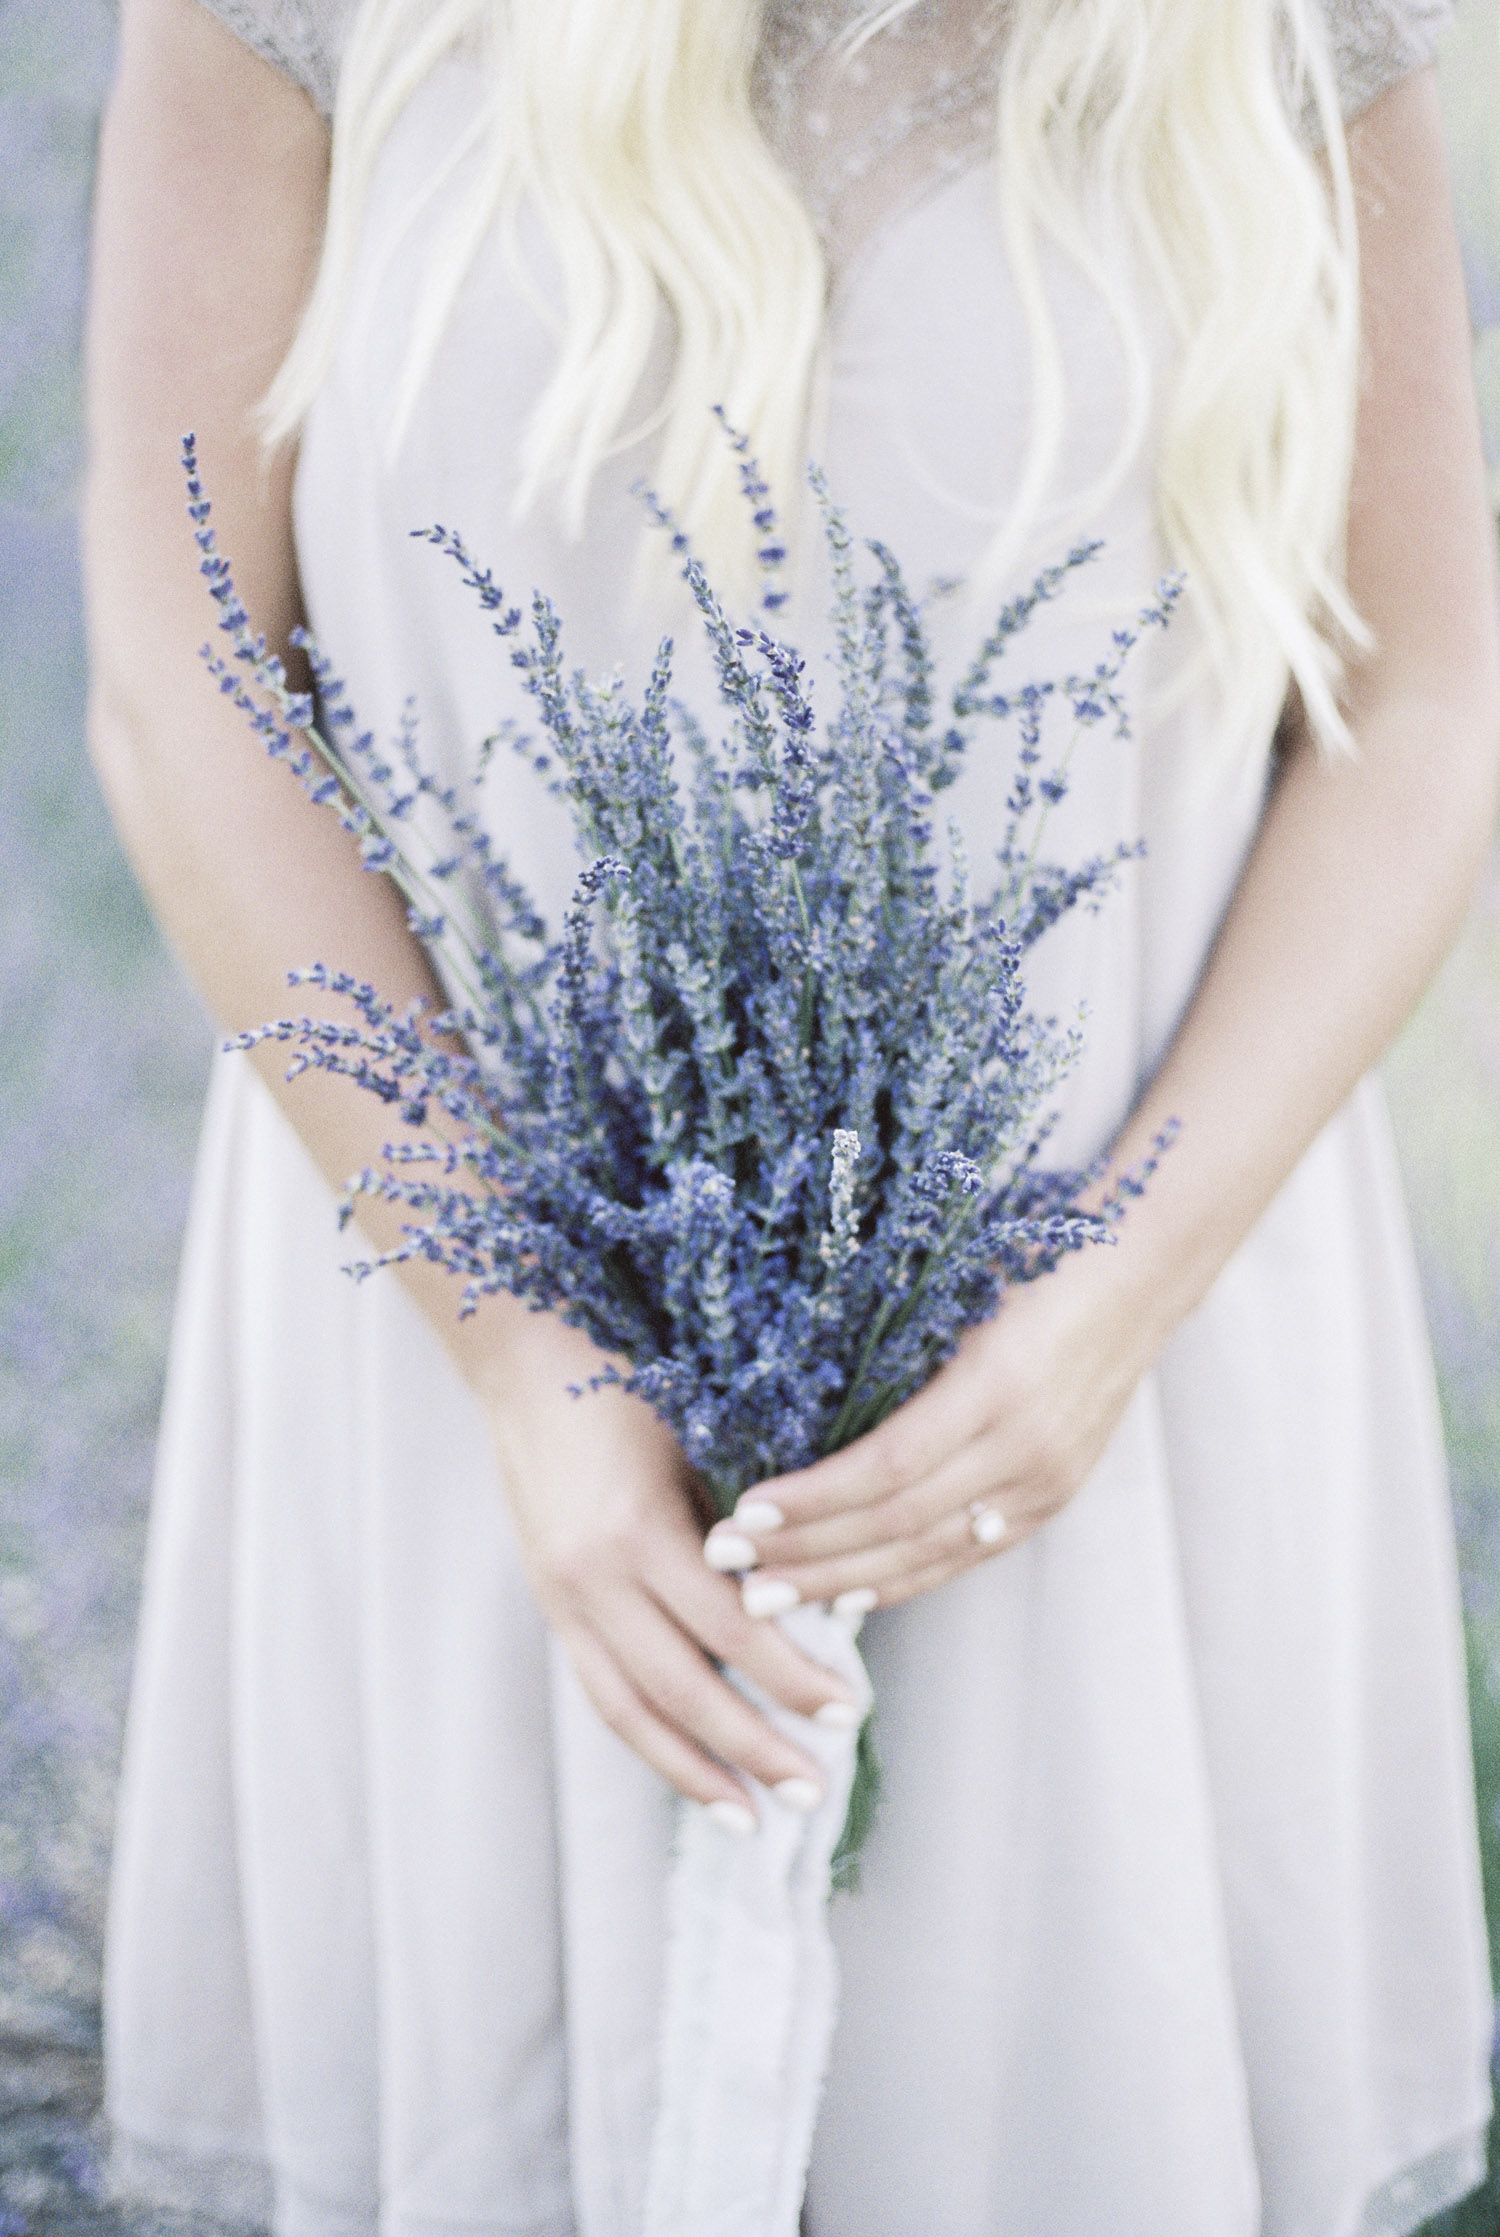 Michigan bride to be holding a bouquet of fresh lavender